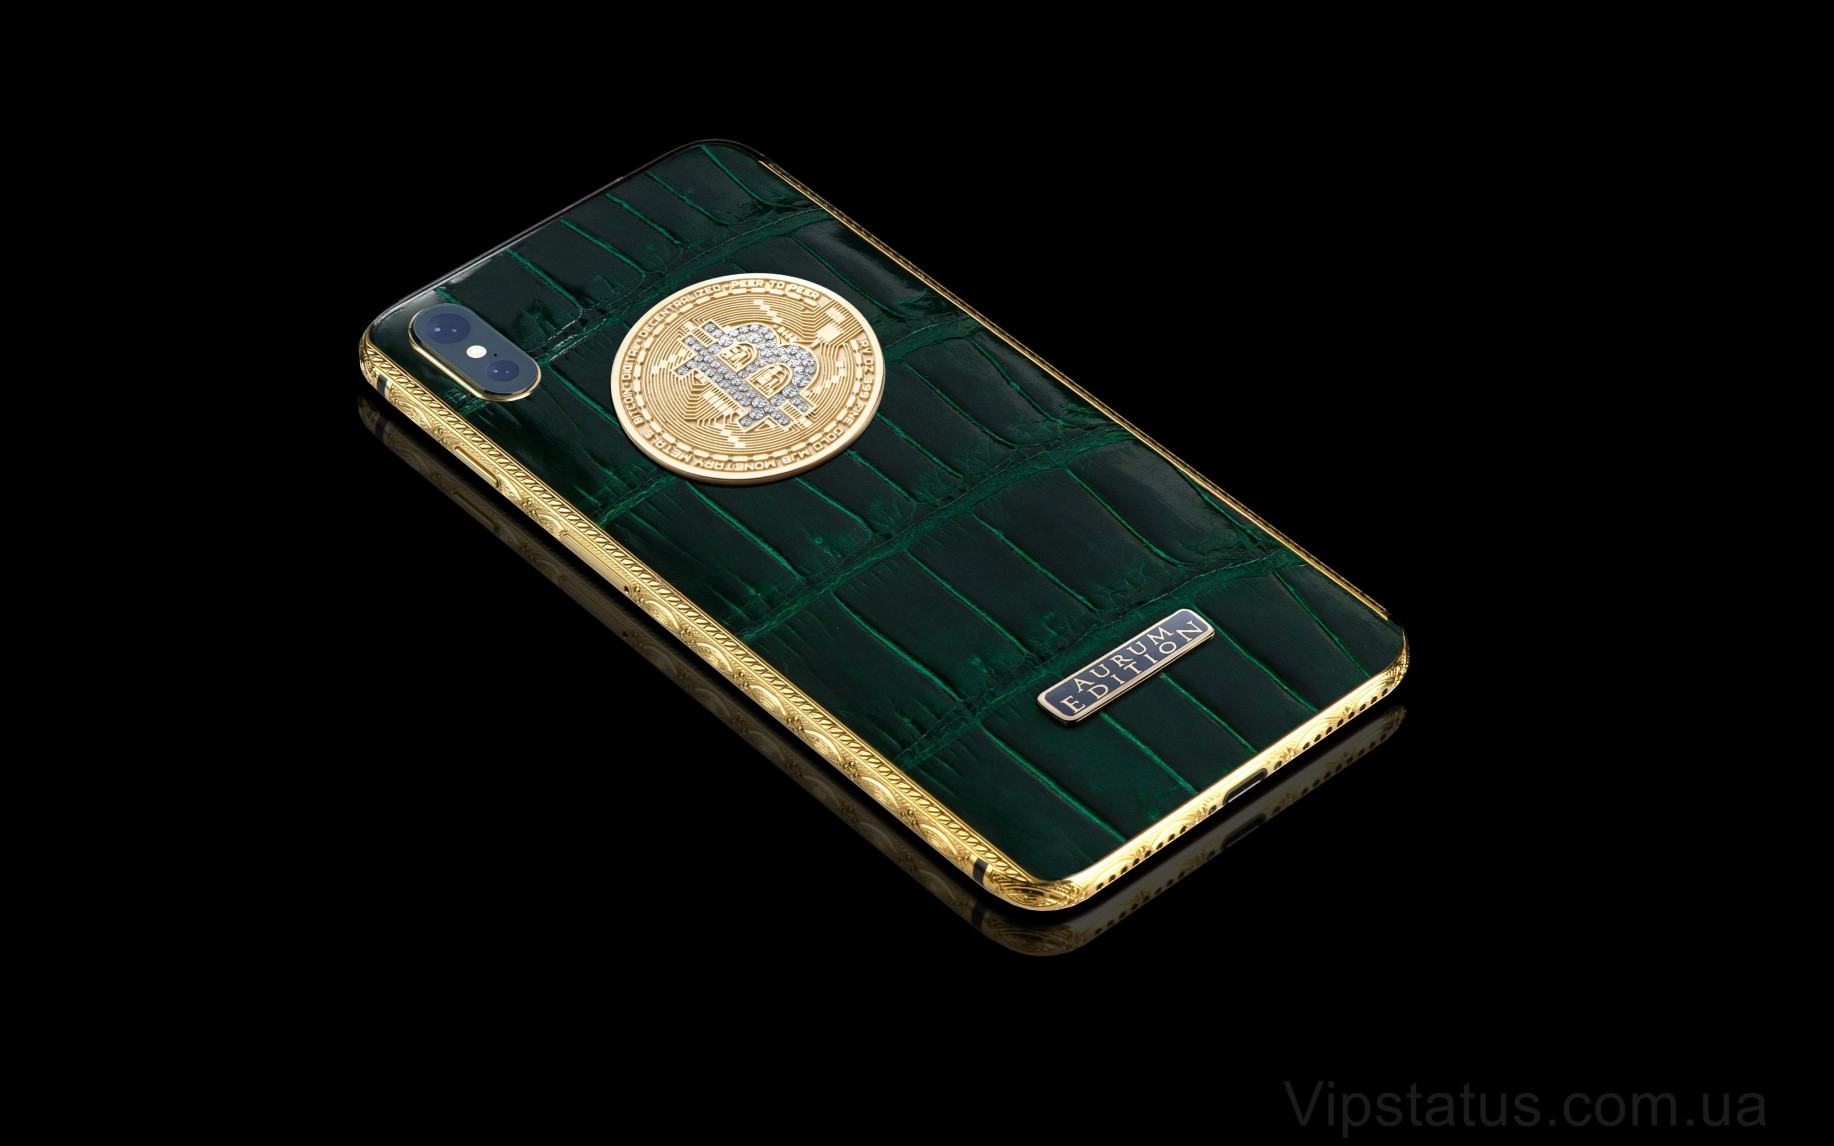 Elite Great Bitcoin Diamond IPHONE 11 PRO MAX 512 GB Great Bitcoin Diamond IPHONE 11 PRO MAX 512 GB image 2